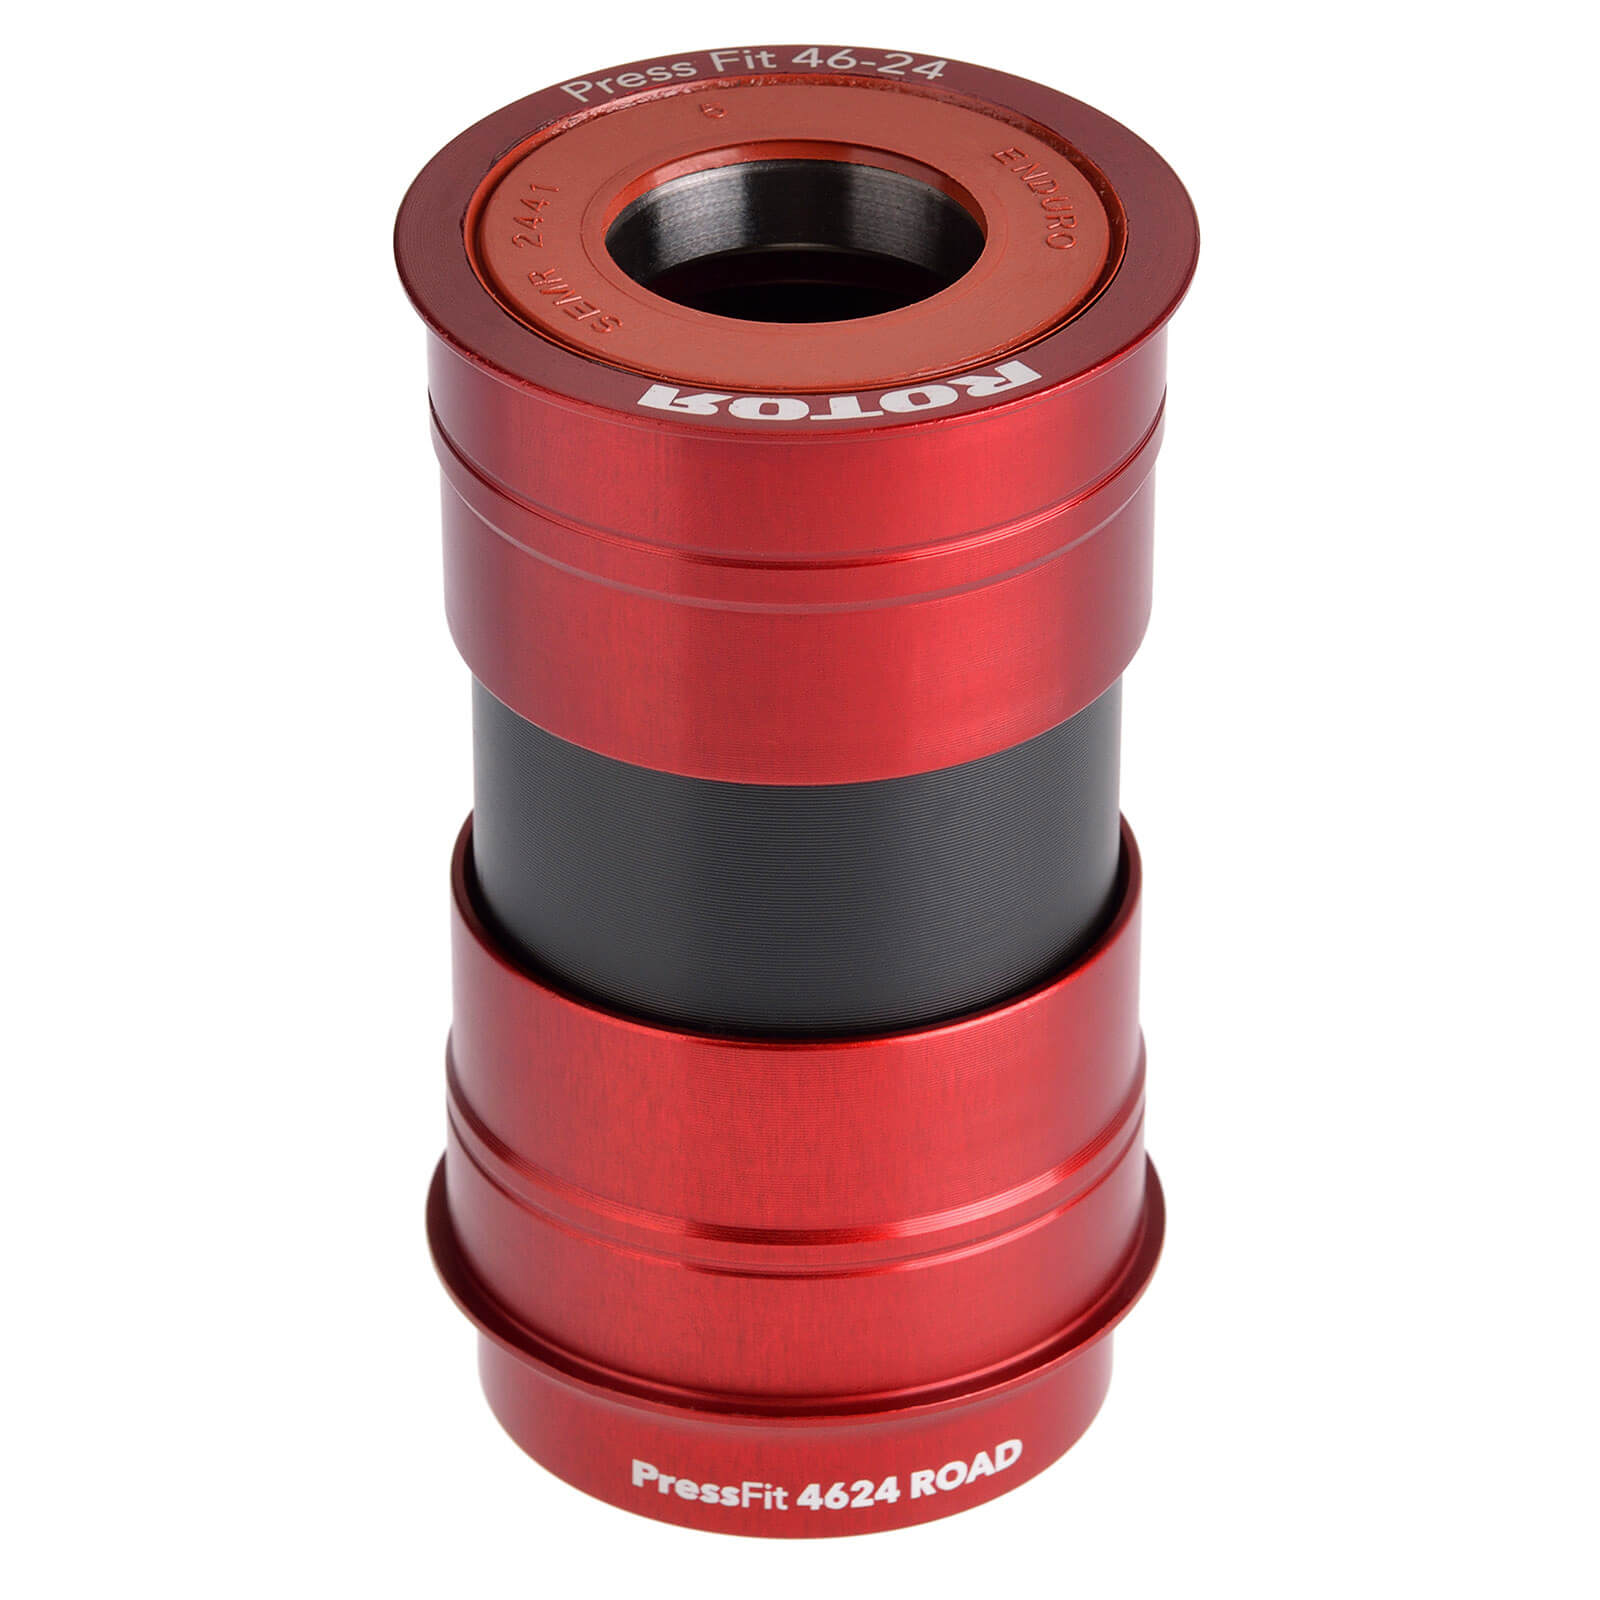 Rotor Press Fit 30 to 24mm Bottom Bracket Converter - Ceramic